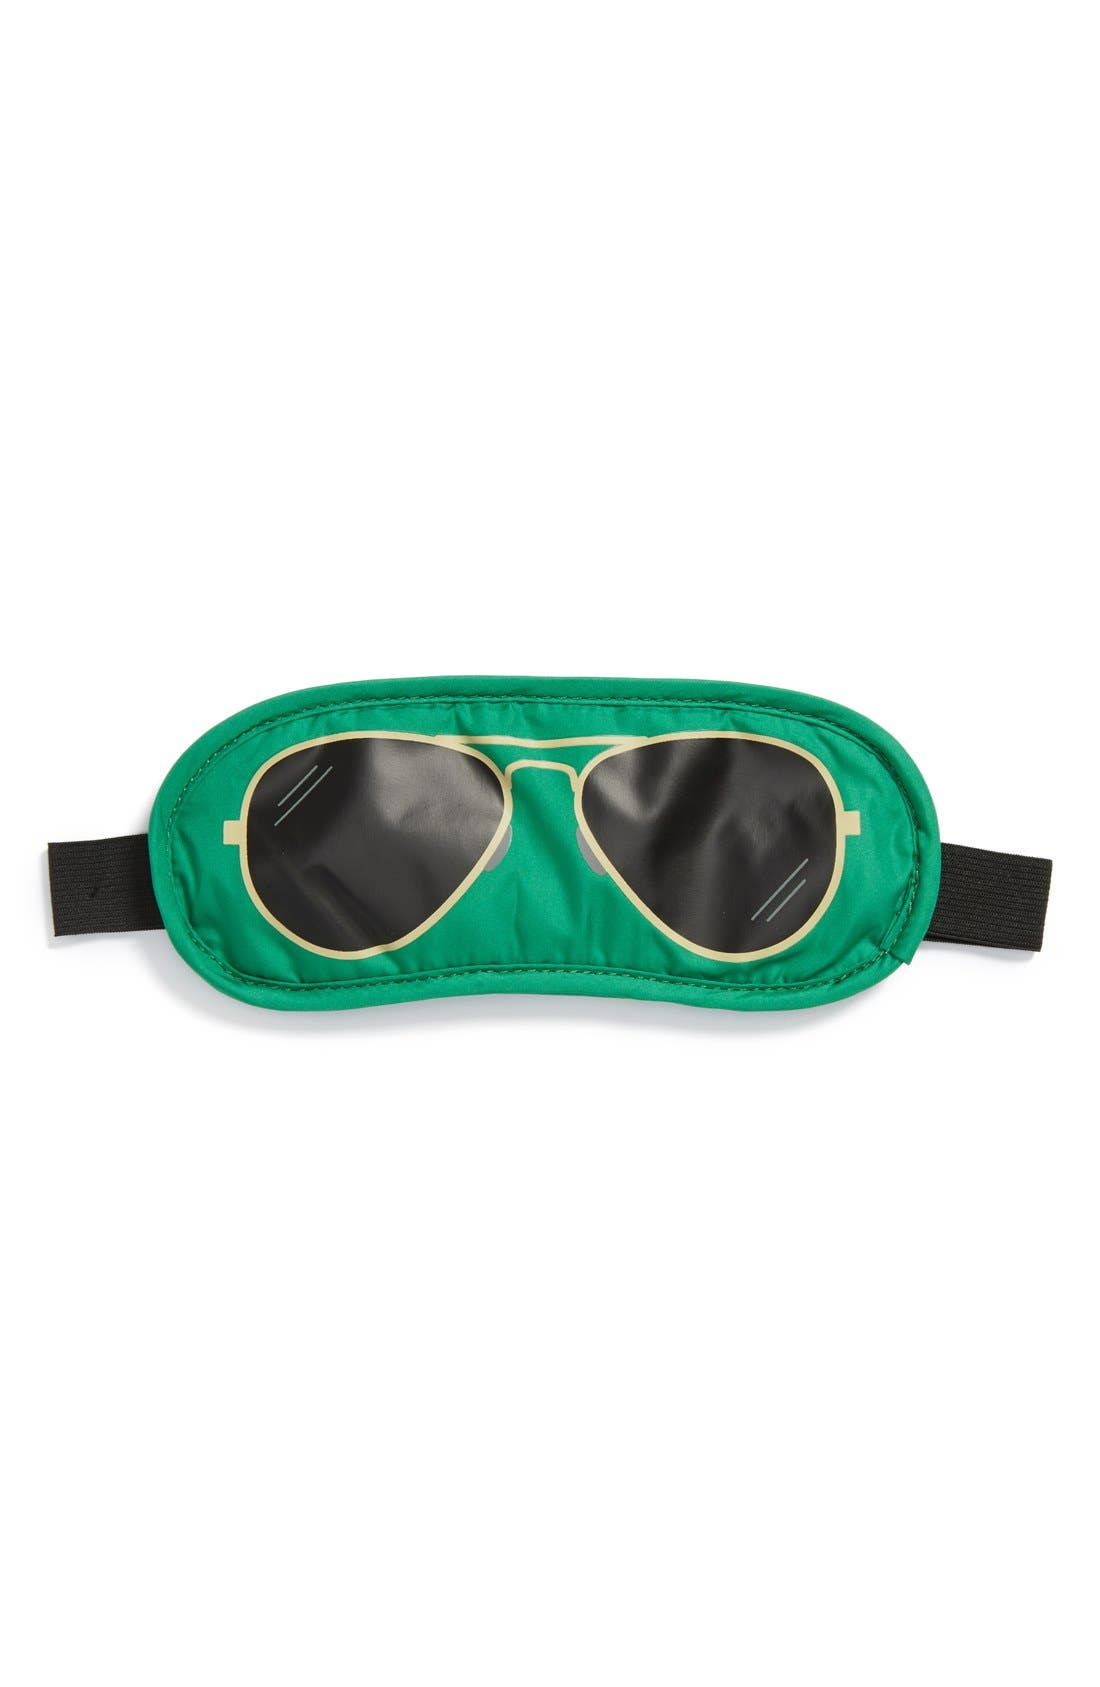 Alternate Image 1 Selected - Flight 001 'Aviators' Sleep Mask